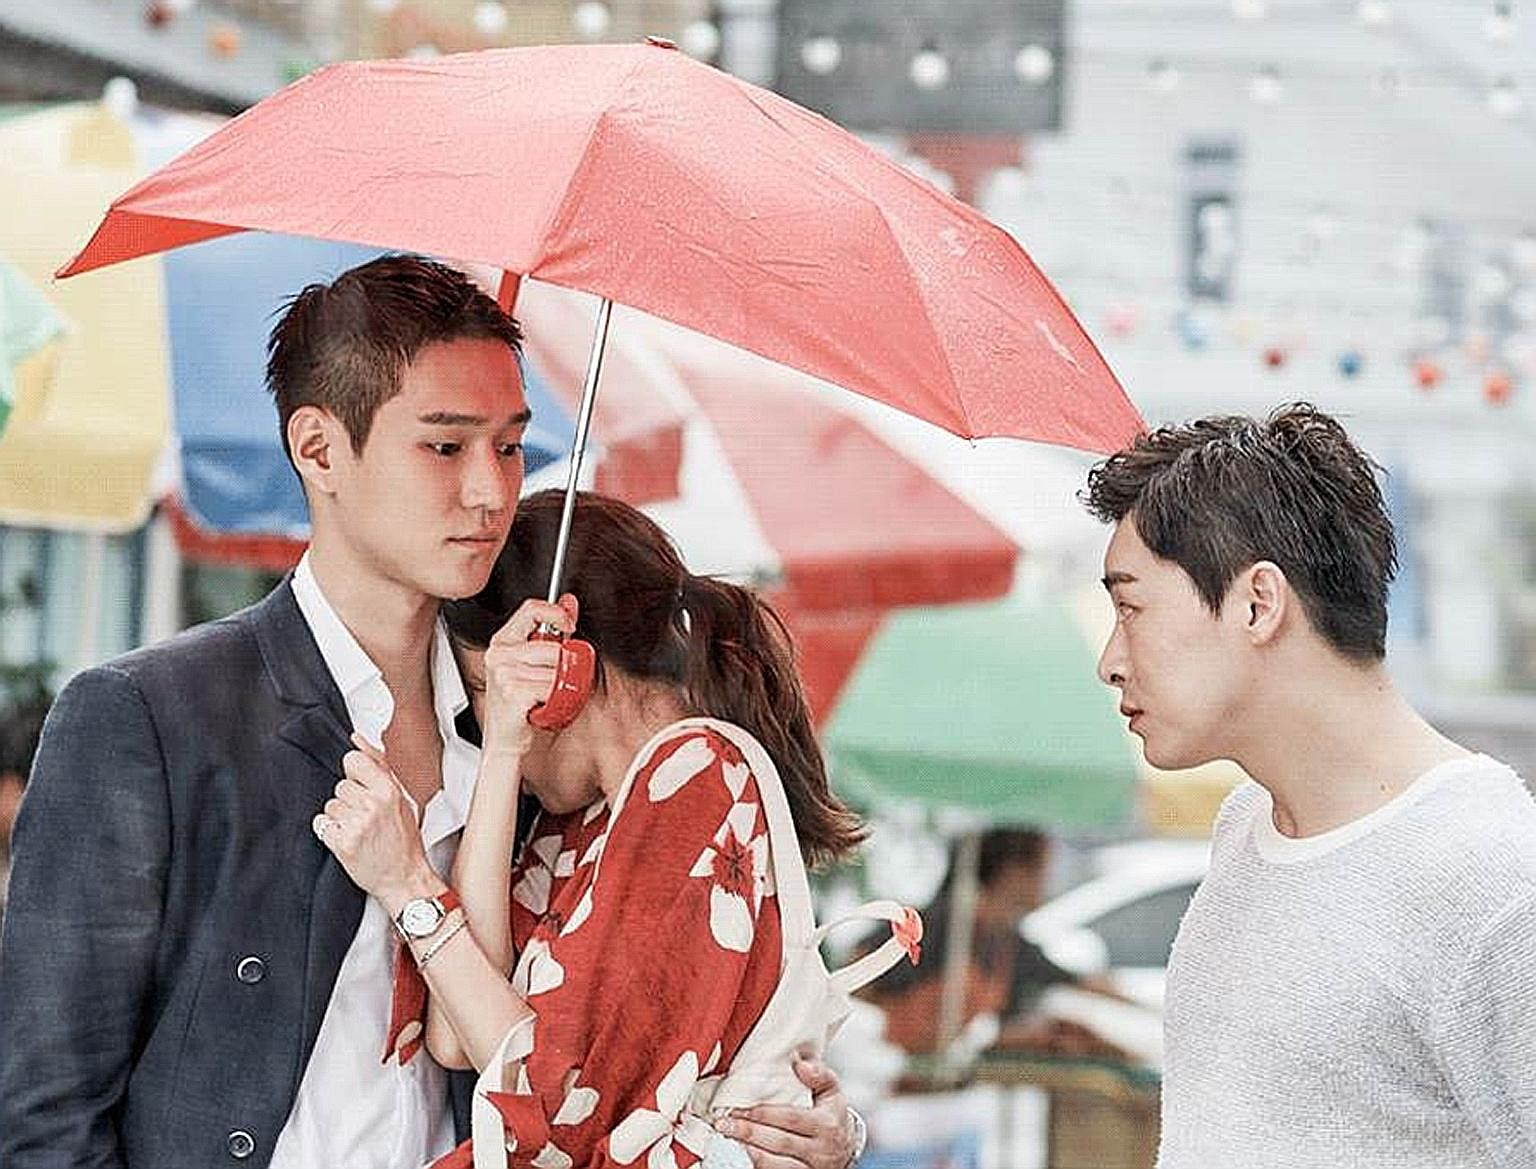 Fashion tycoon Go Jung Won (far left, played by Ko Kyoung Pyo) and his best friend Lee Hwa Shin (right, Cho Jung Seok) are in love with weathergirl Pyo Na Ri (centre, Kong Hyo Jin) in Jealousy Incarnate.